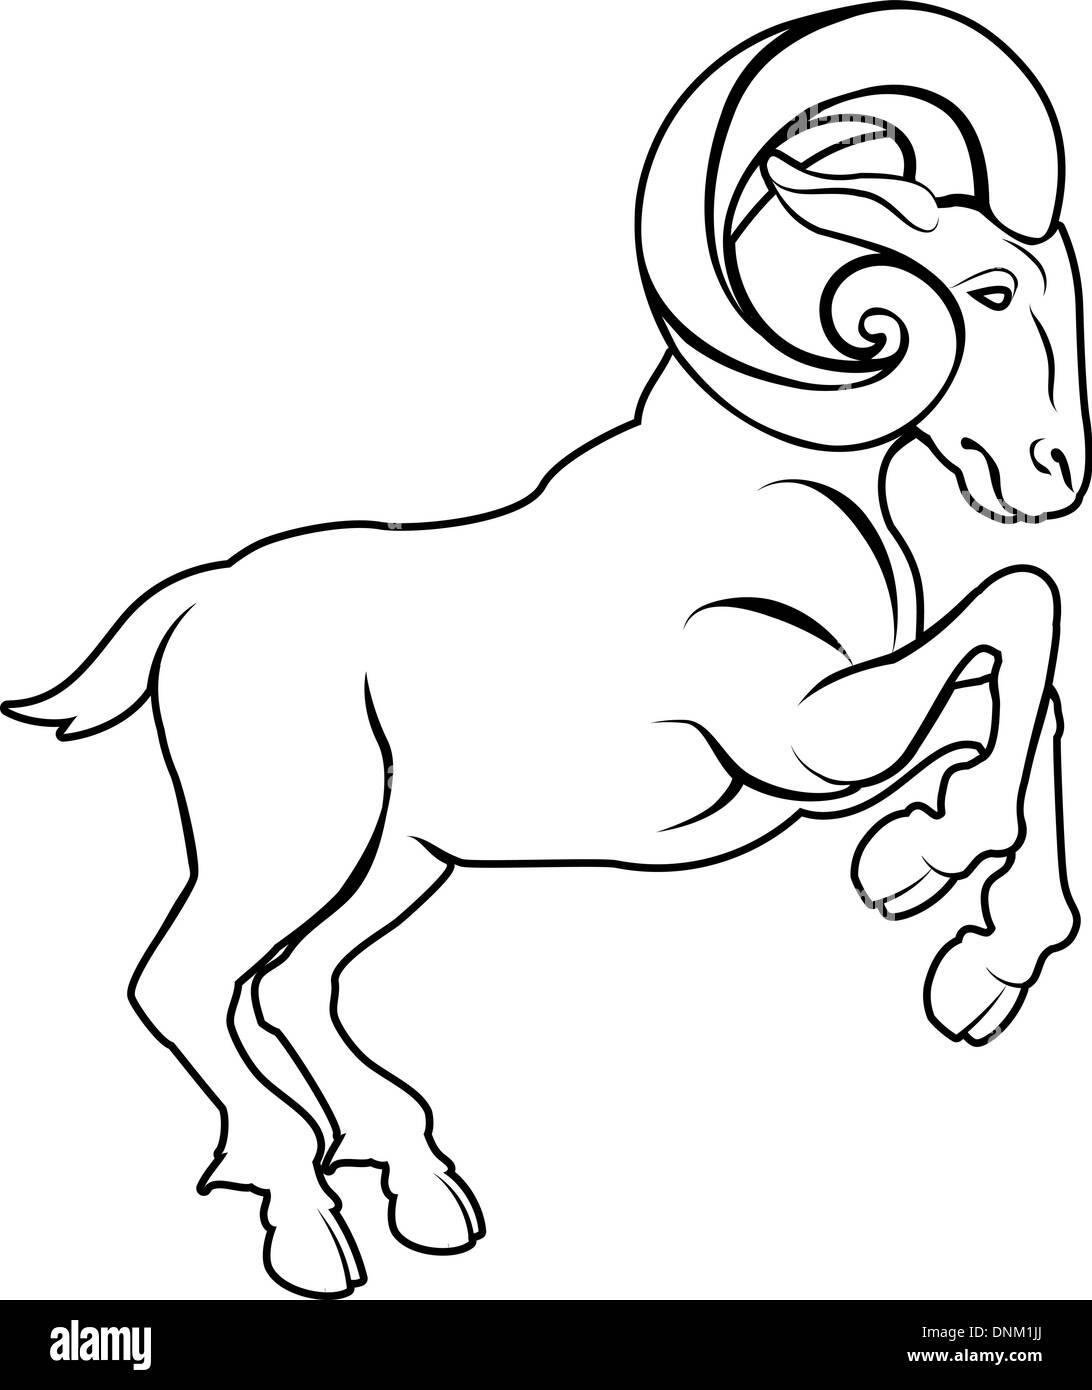 An illustration of a stylised black ram or sheep perhaps a ram tattoo - Stock Image